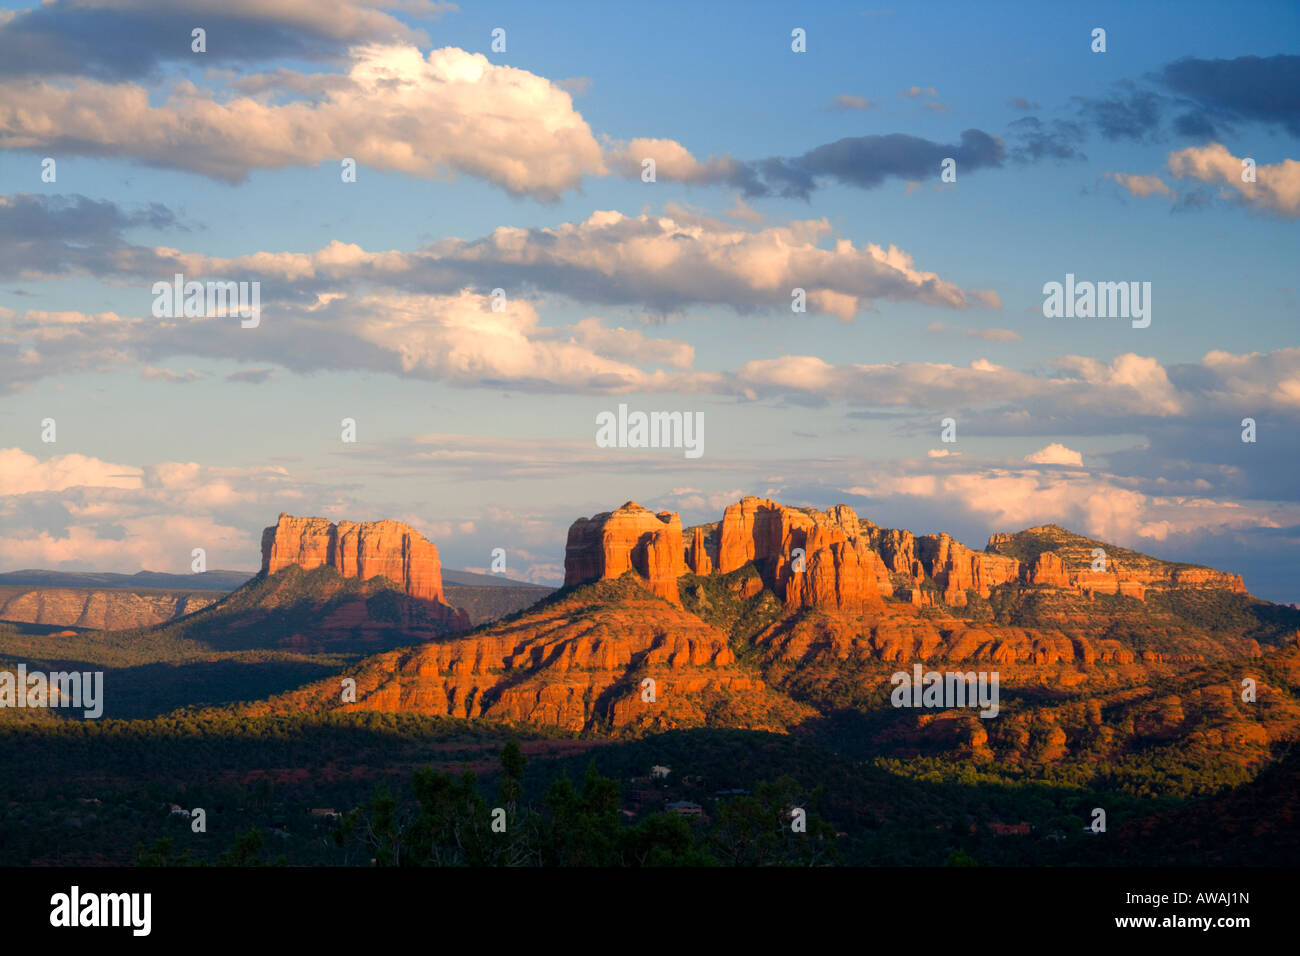 Red Rocks at sunset - Stock Image